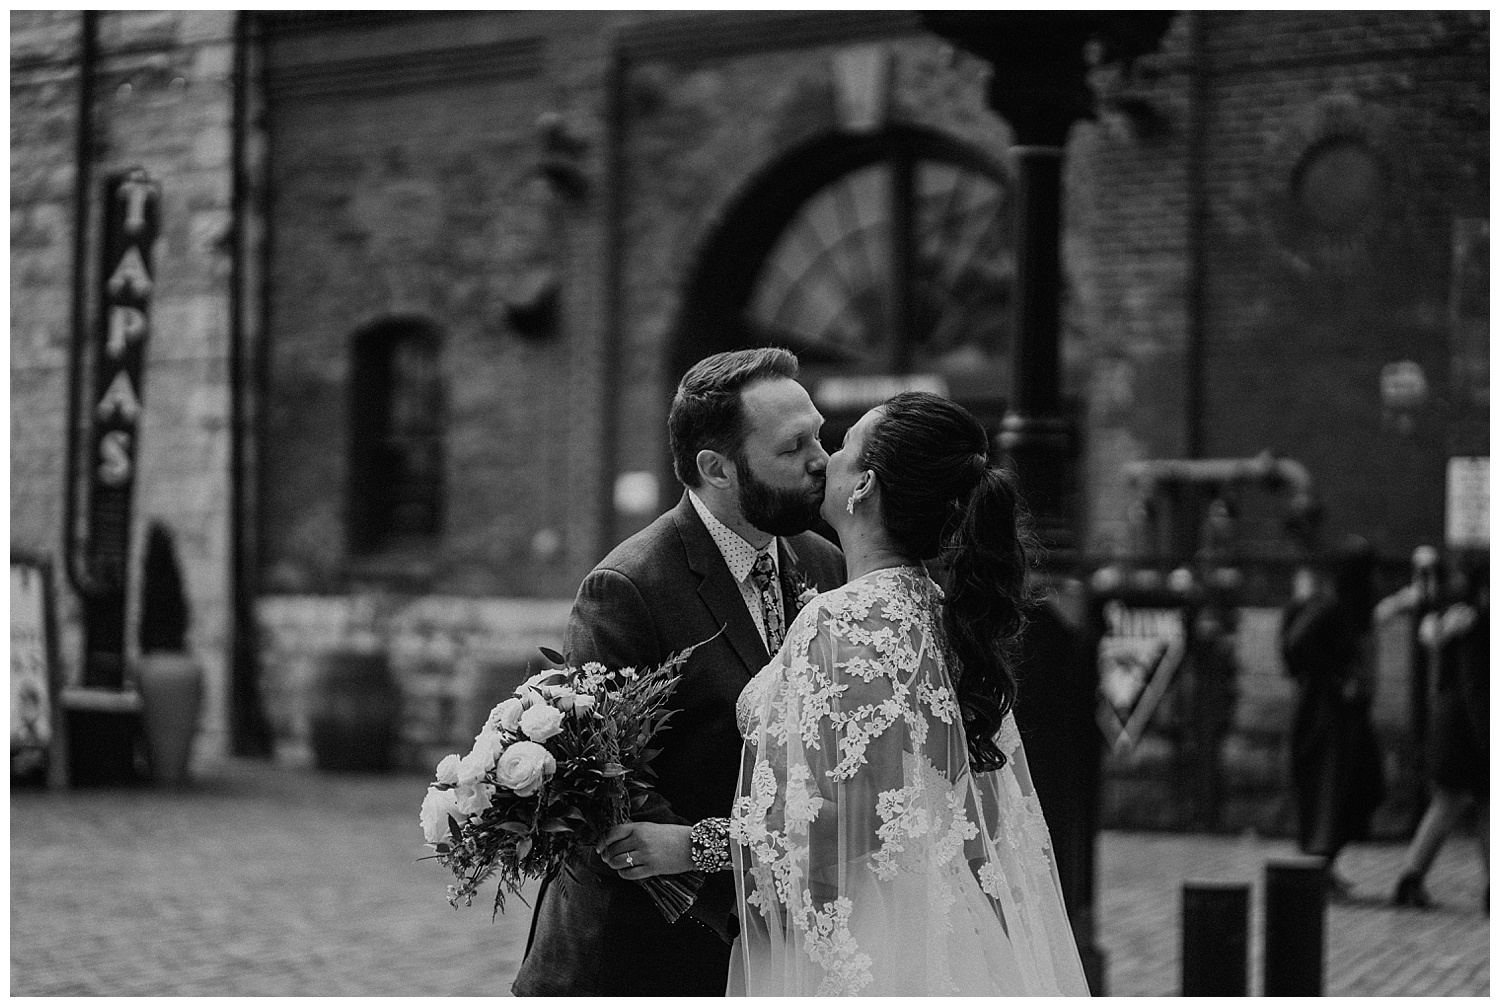 Katie Marie Photography | Archeo Wedding Arta Gallery Wedding | Distillery District Wedding | Toronto Wedding Photographer | Hamilton Toronto Ontario Wedding Photographer |_0009.jpg